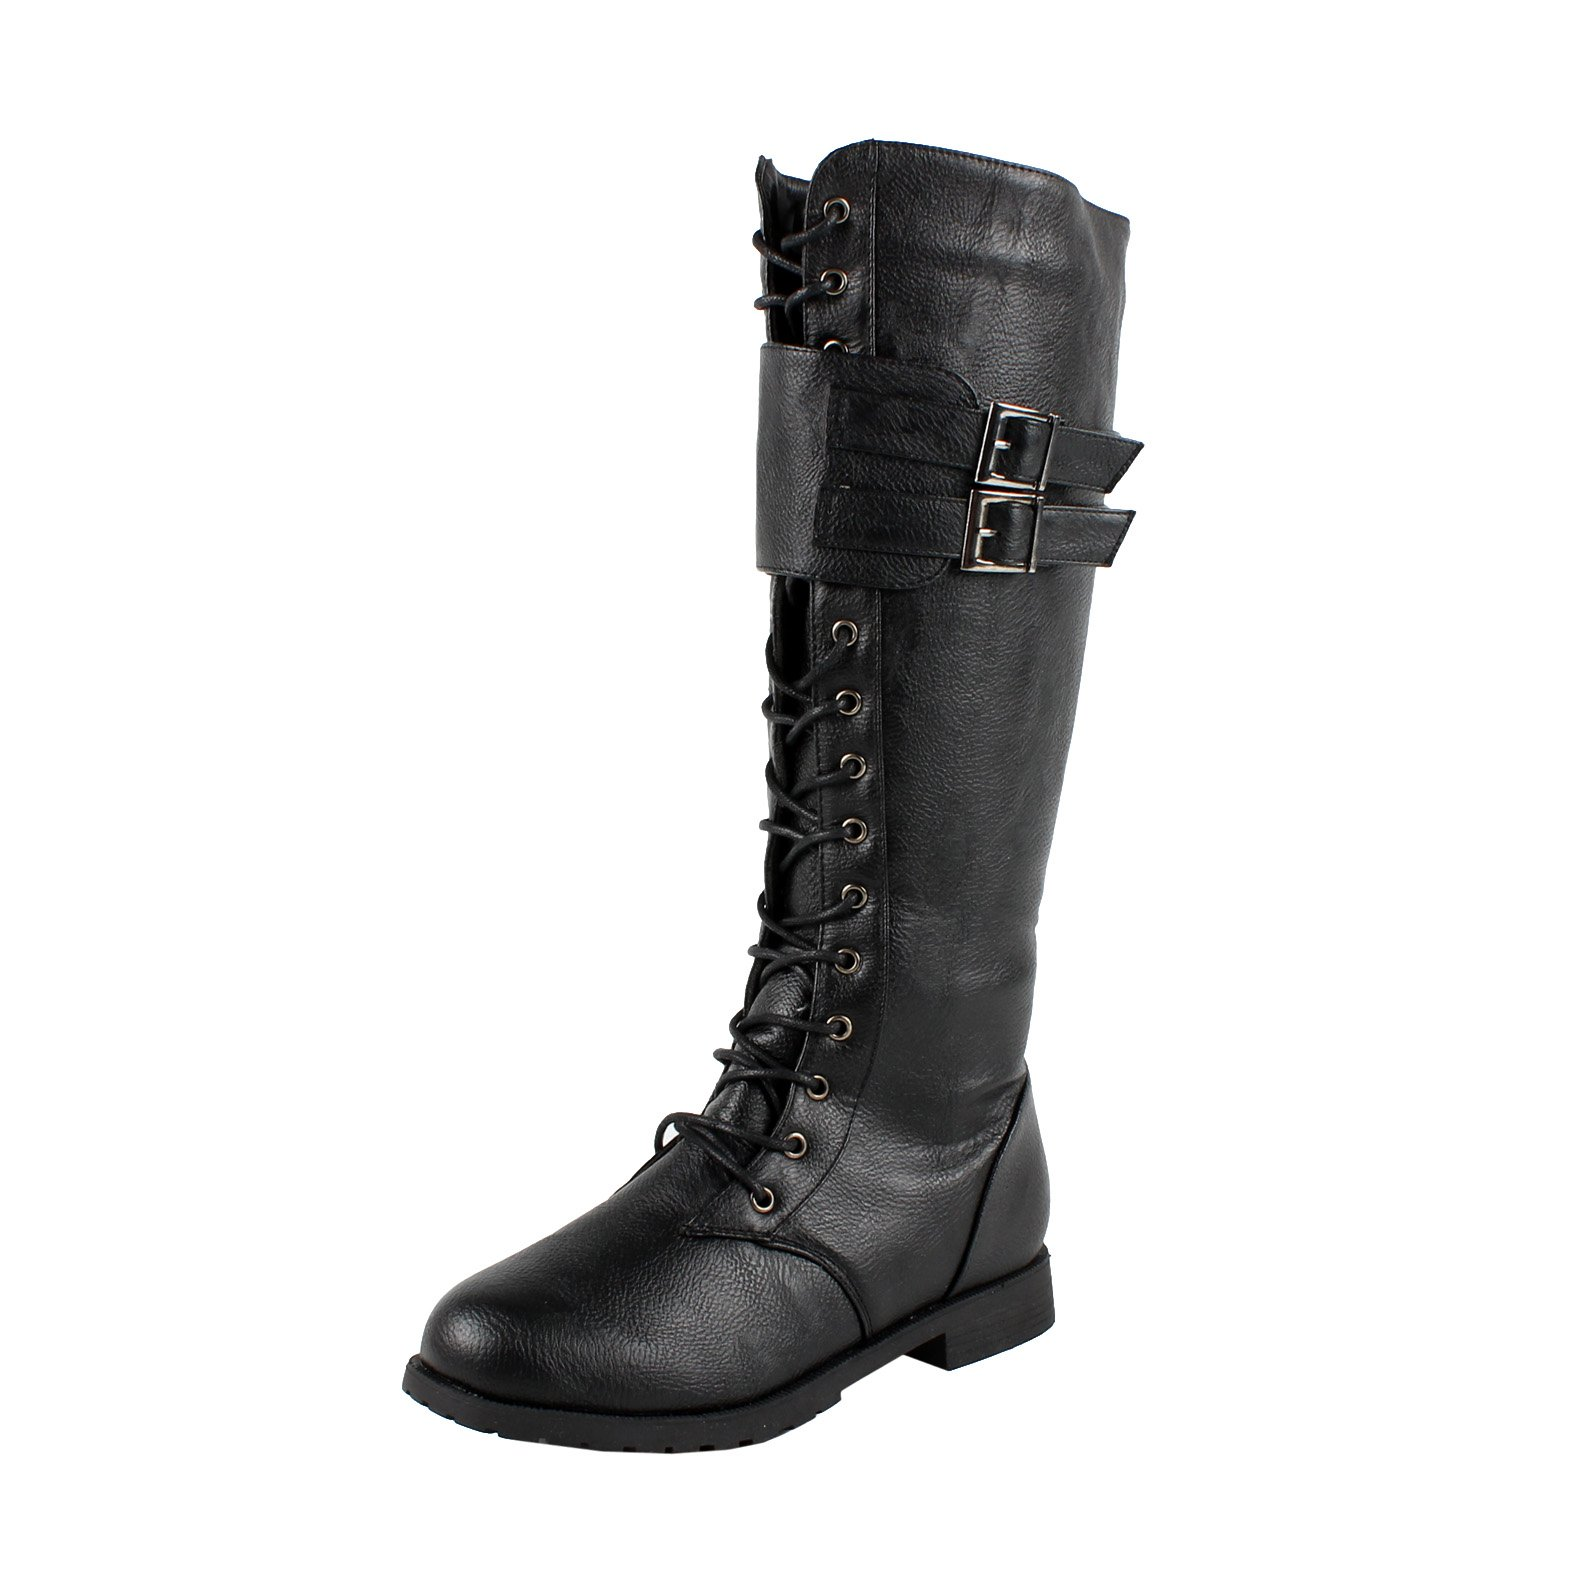 d22211ba6 Galleon - West Blvd Womens MANILA COMBAT Boots Lace Up Military Army  Motorcycle Biker Flat Mid Calf Shoes, Black Pu, US 7.5